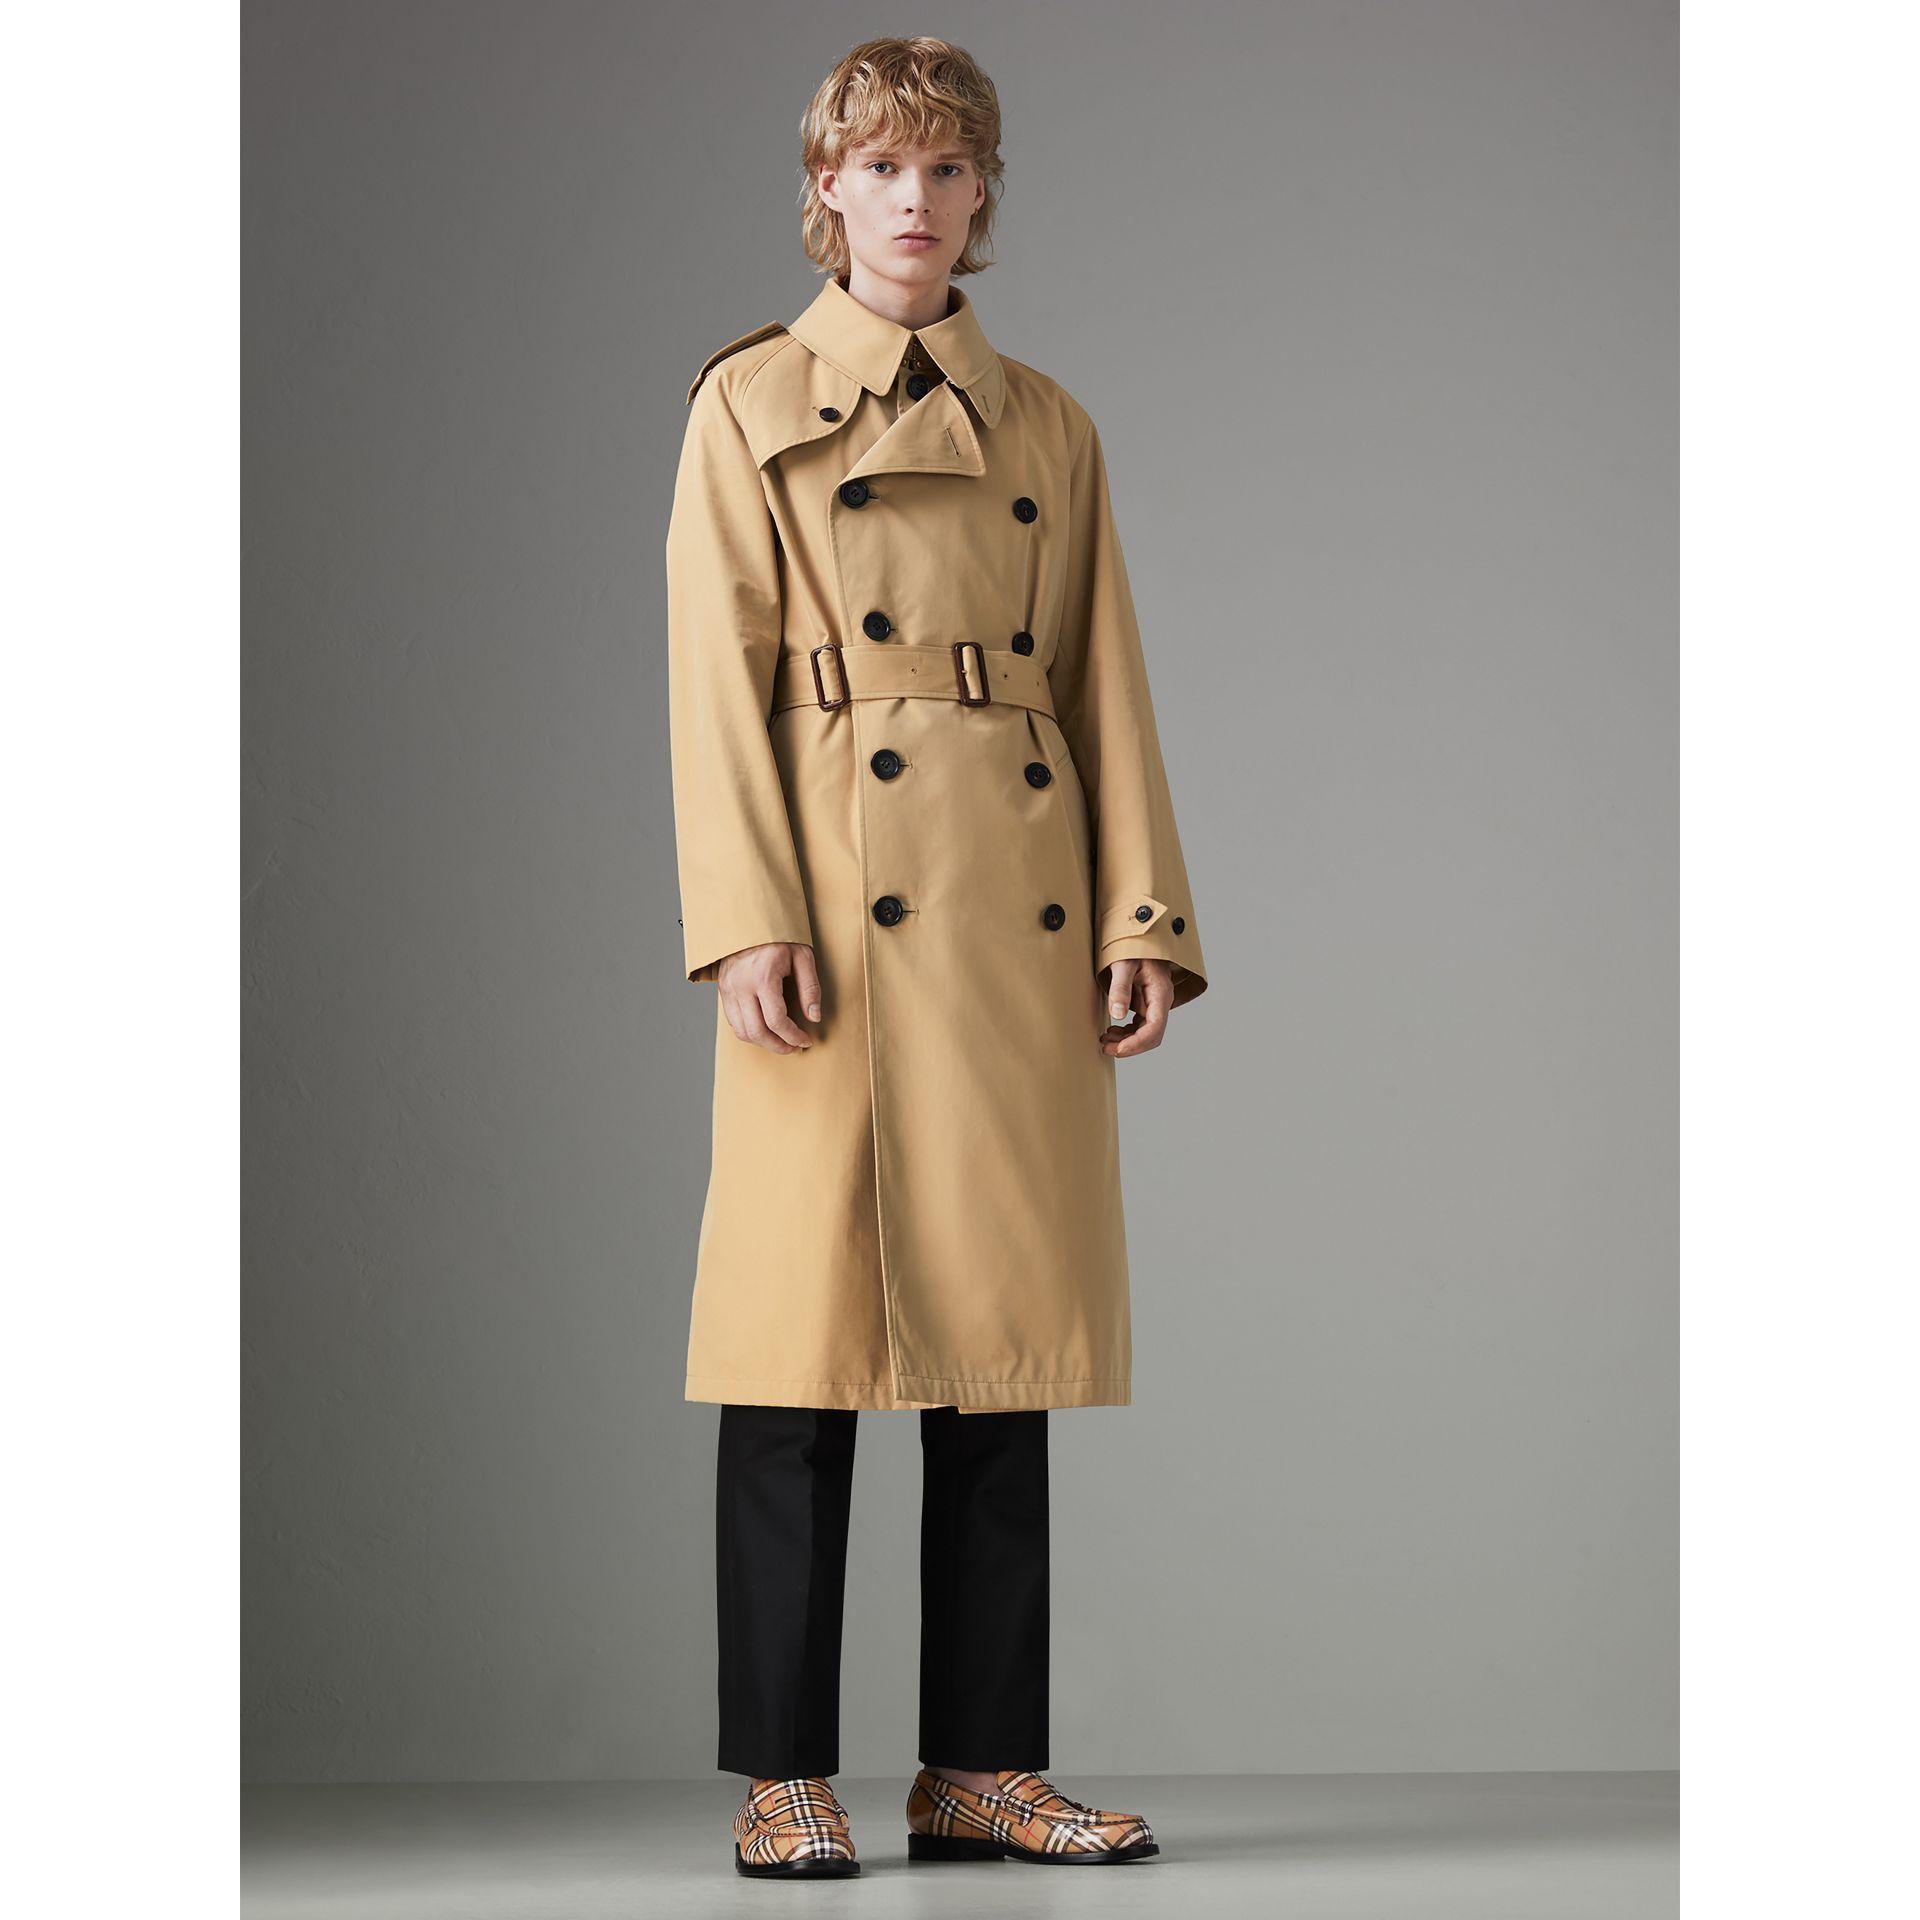 Gosha x Burberry Reconstructed Trench Coat in Honey | Burberry Singapore - gallery image 6